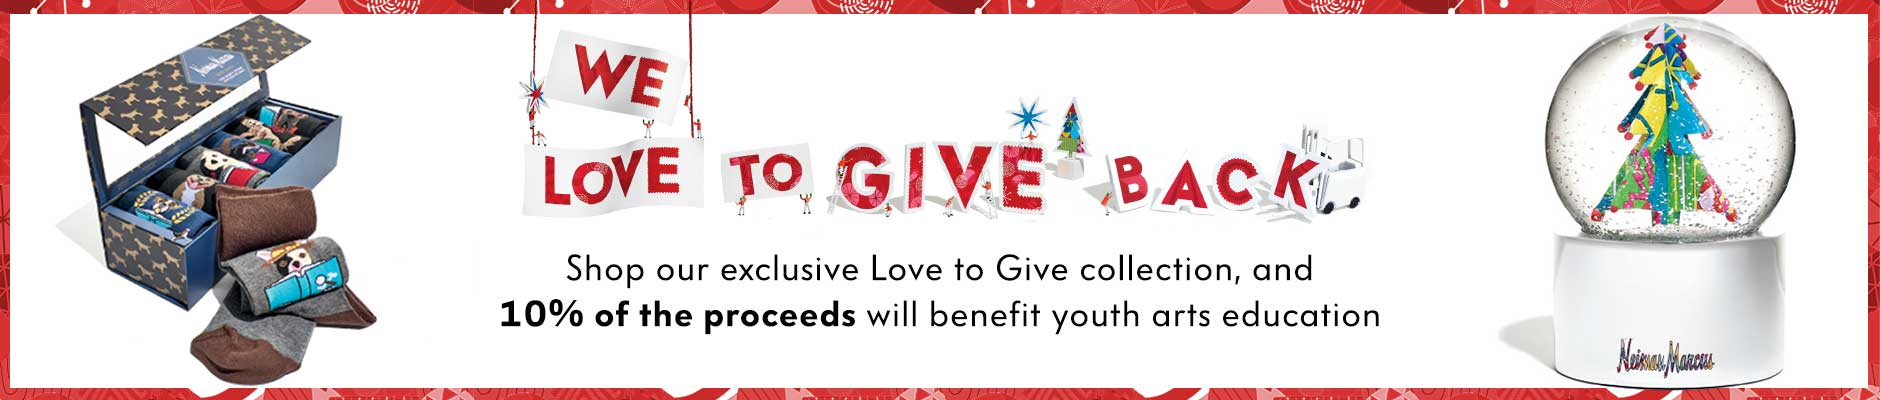 We love to give back - Shop our exclusie love to give collection, and 10% of the proceeds will benefit youth arts education